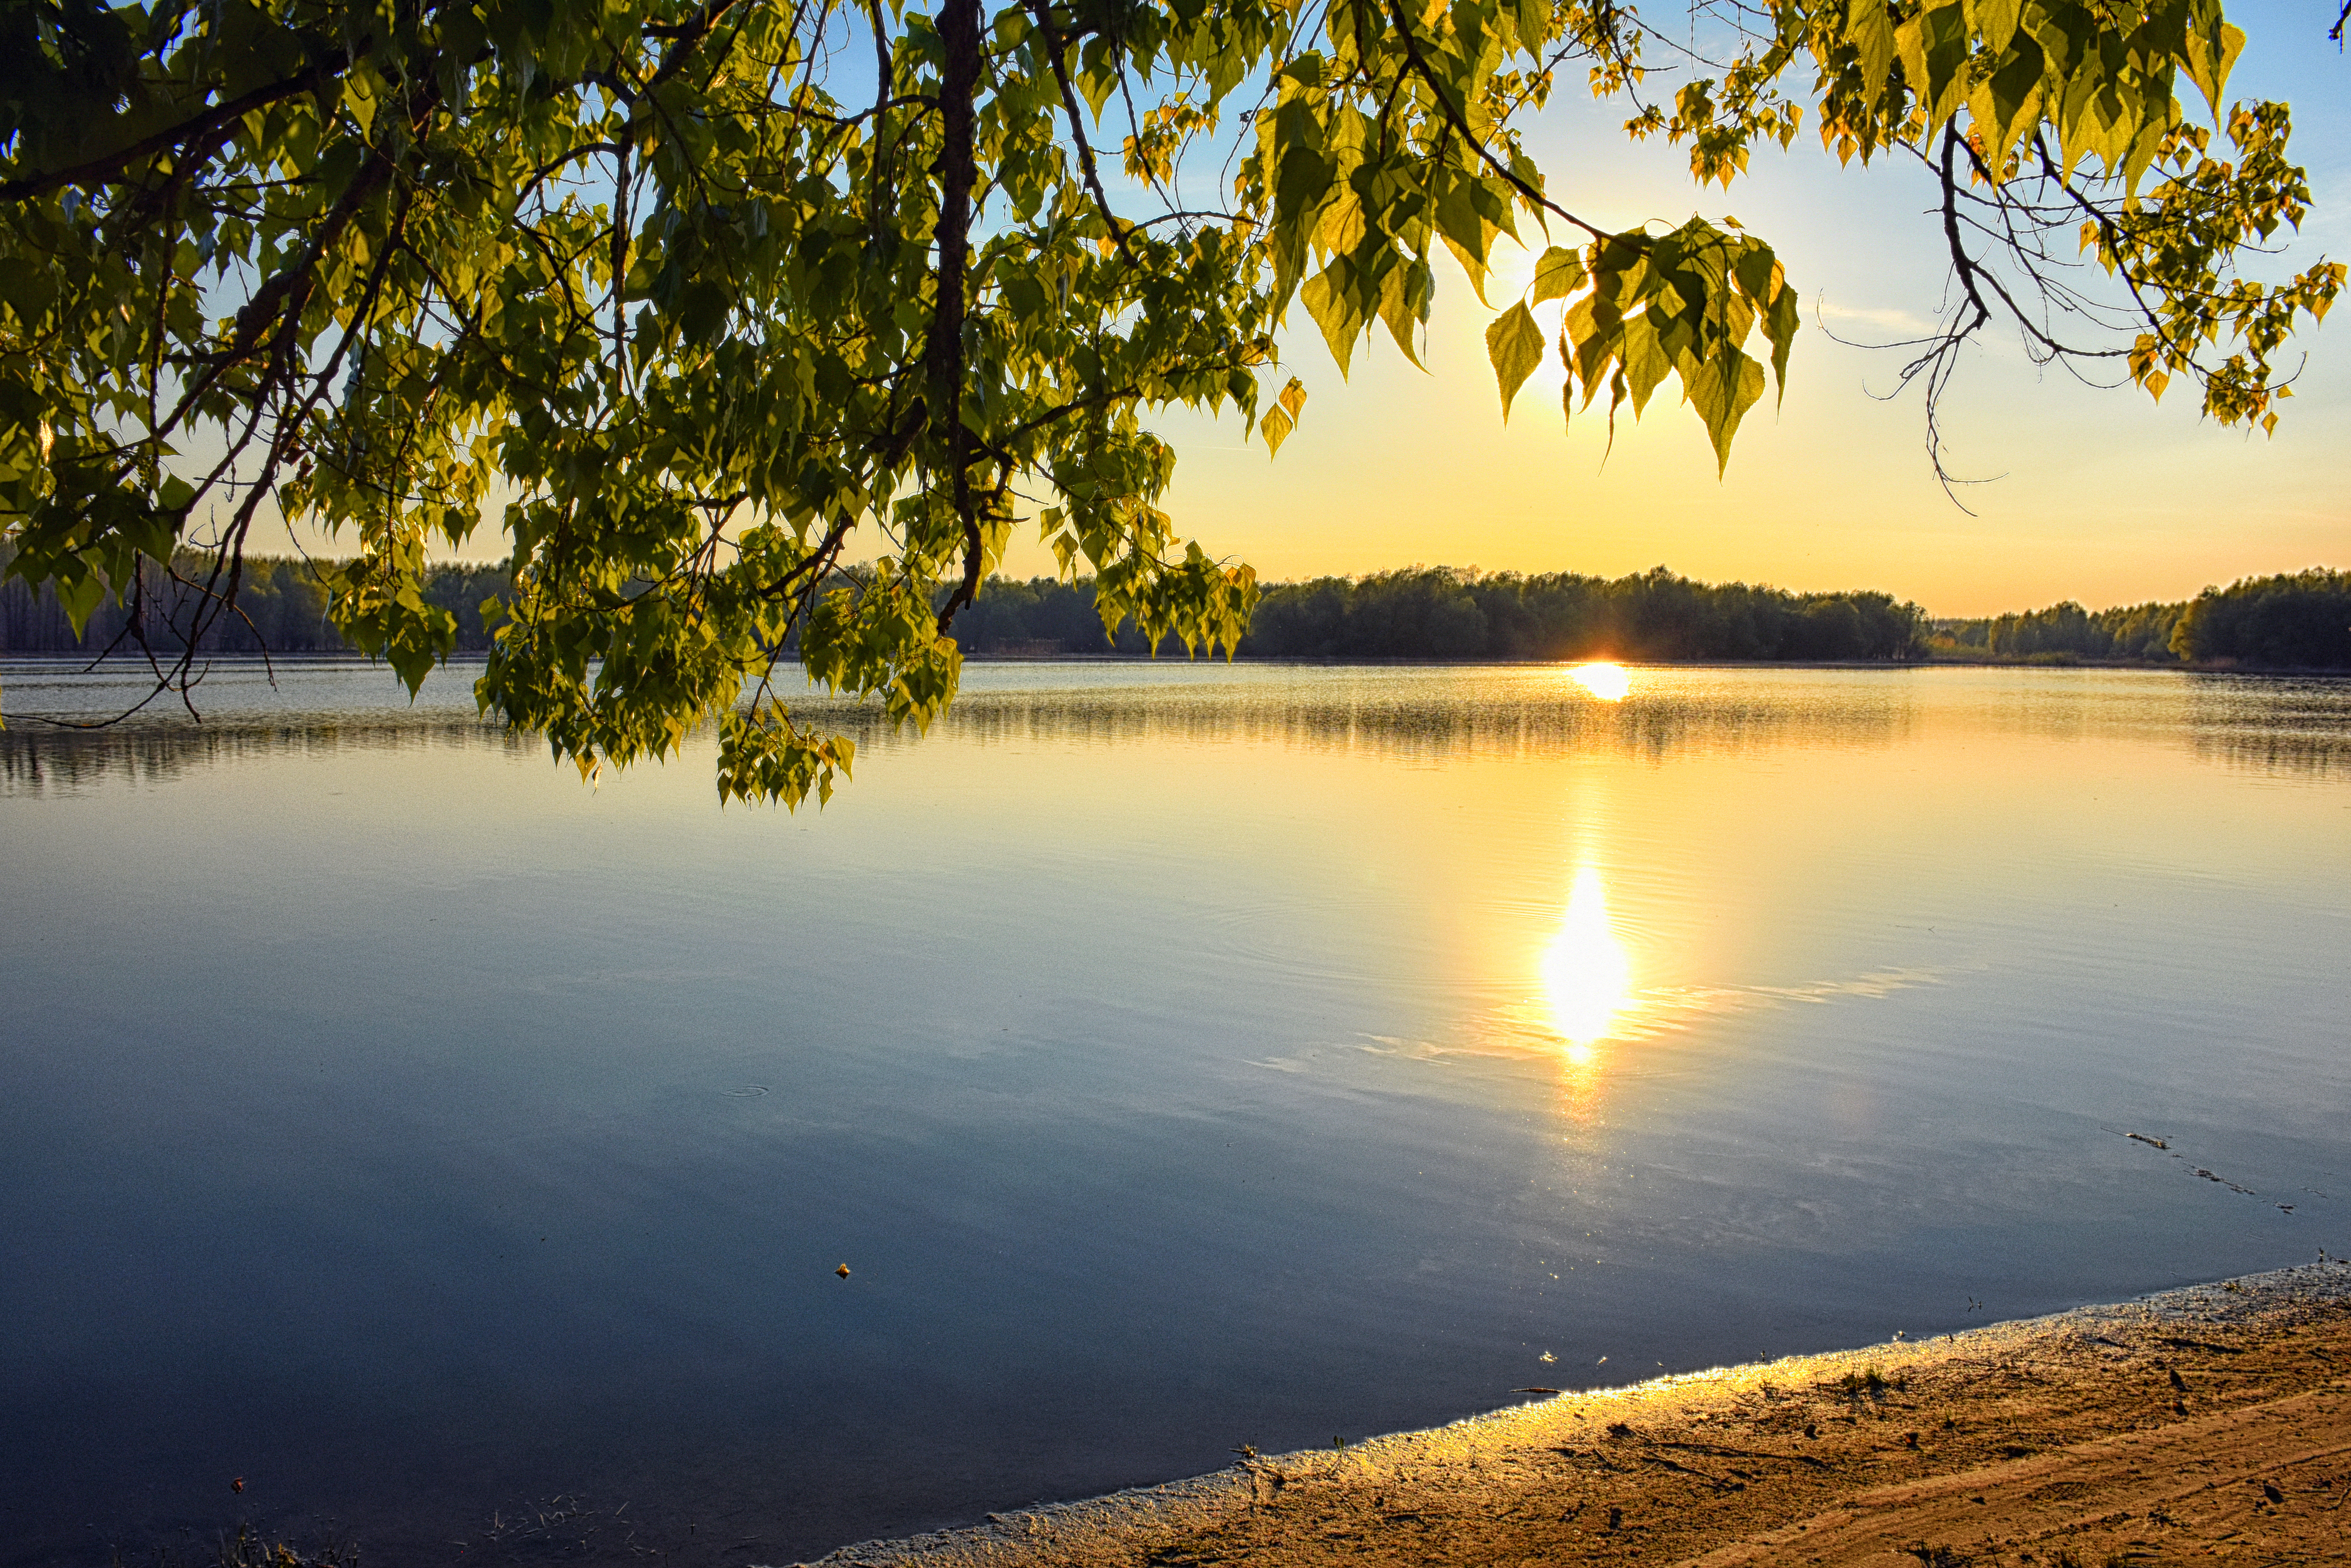 Sunset Reflection On Water - free  images to use -